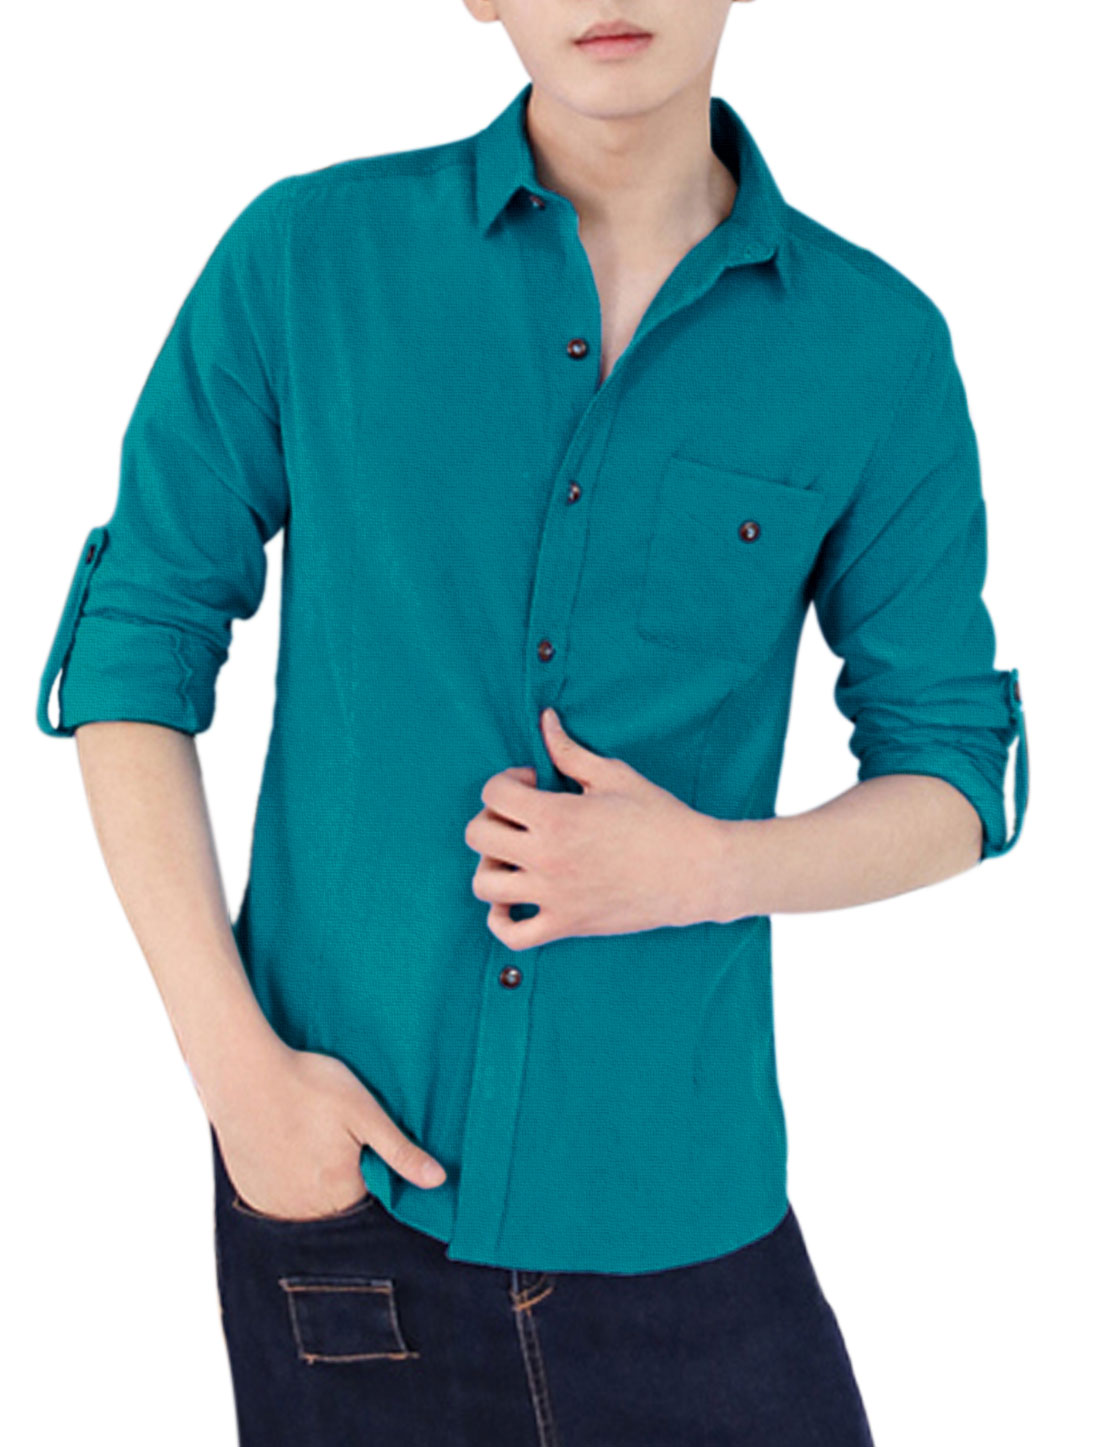 Roll-up Sleeves Single Breasted Blue Corduroy Shirt for Man S